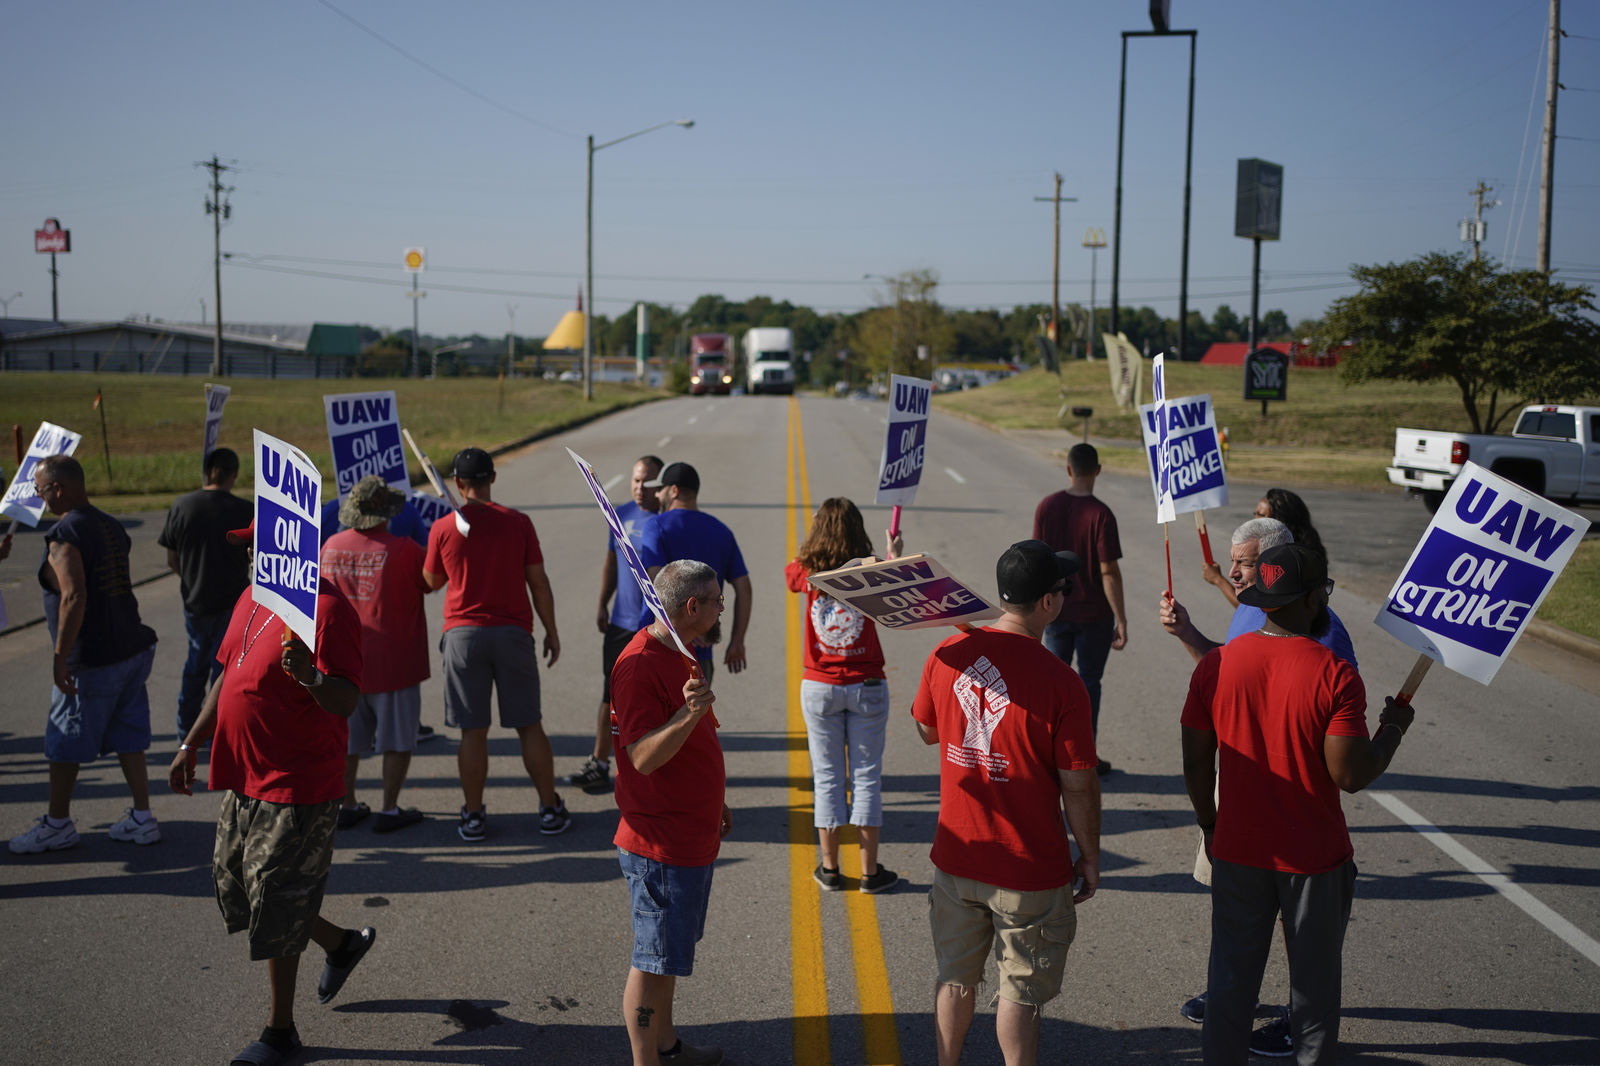 Gm Workers To Stay On Picket Line Until Vote On New